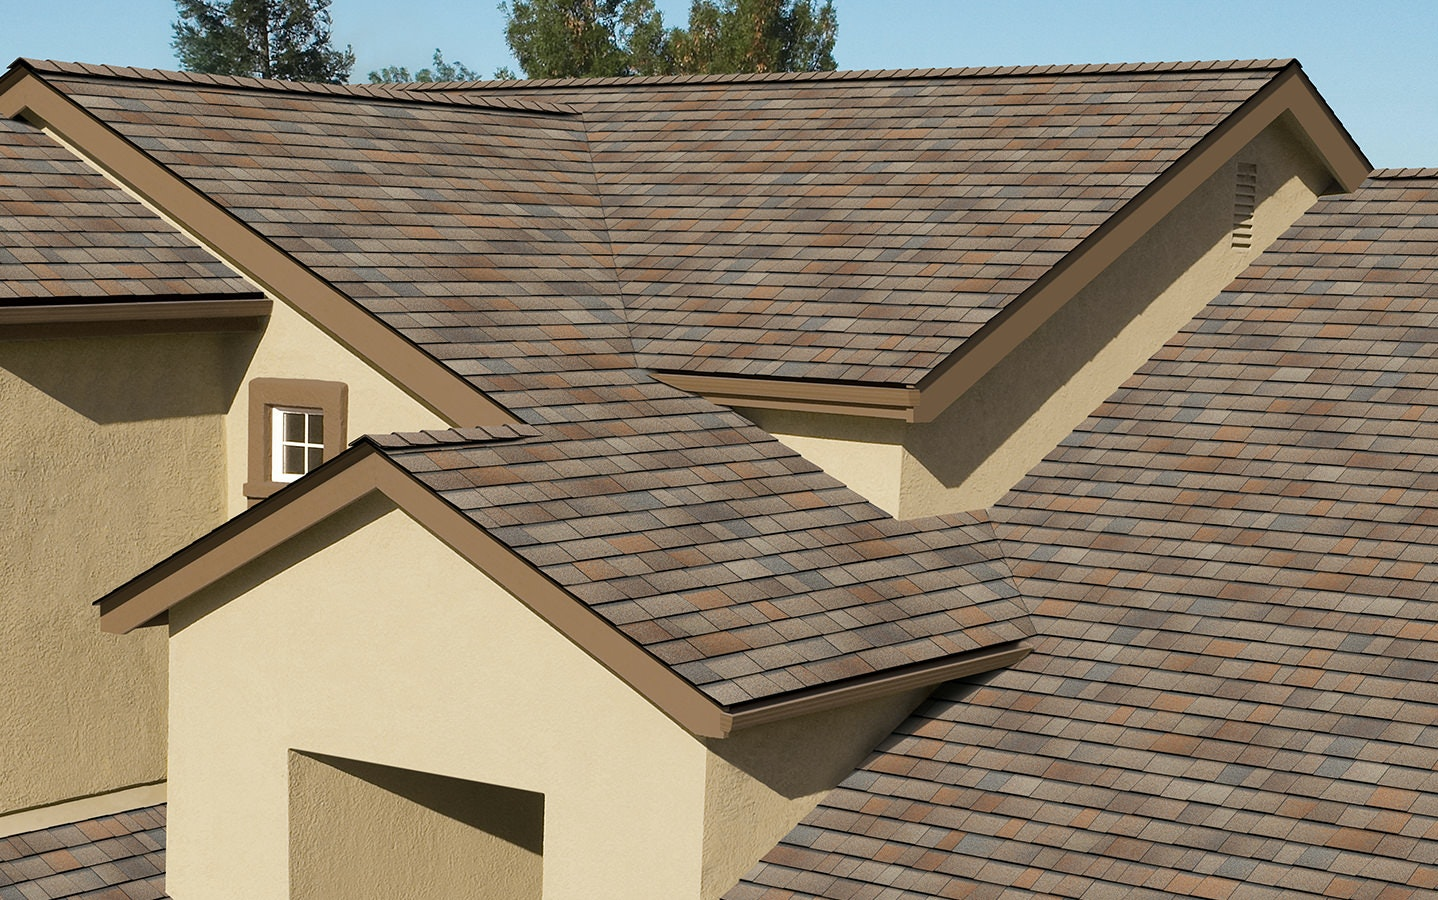 Duration Premium Cool roof in sunrise on a sand colored stucco home.